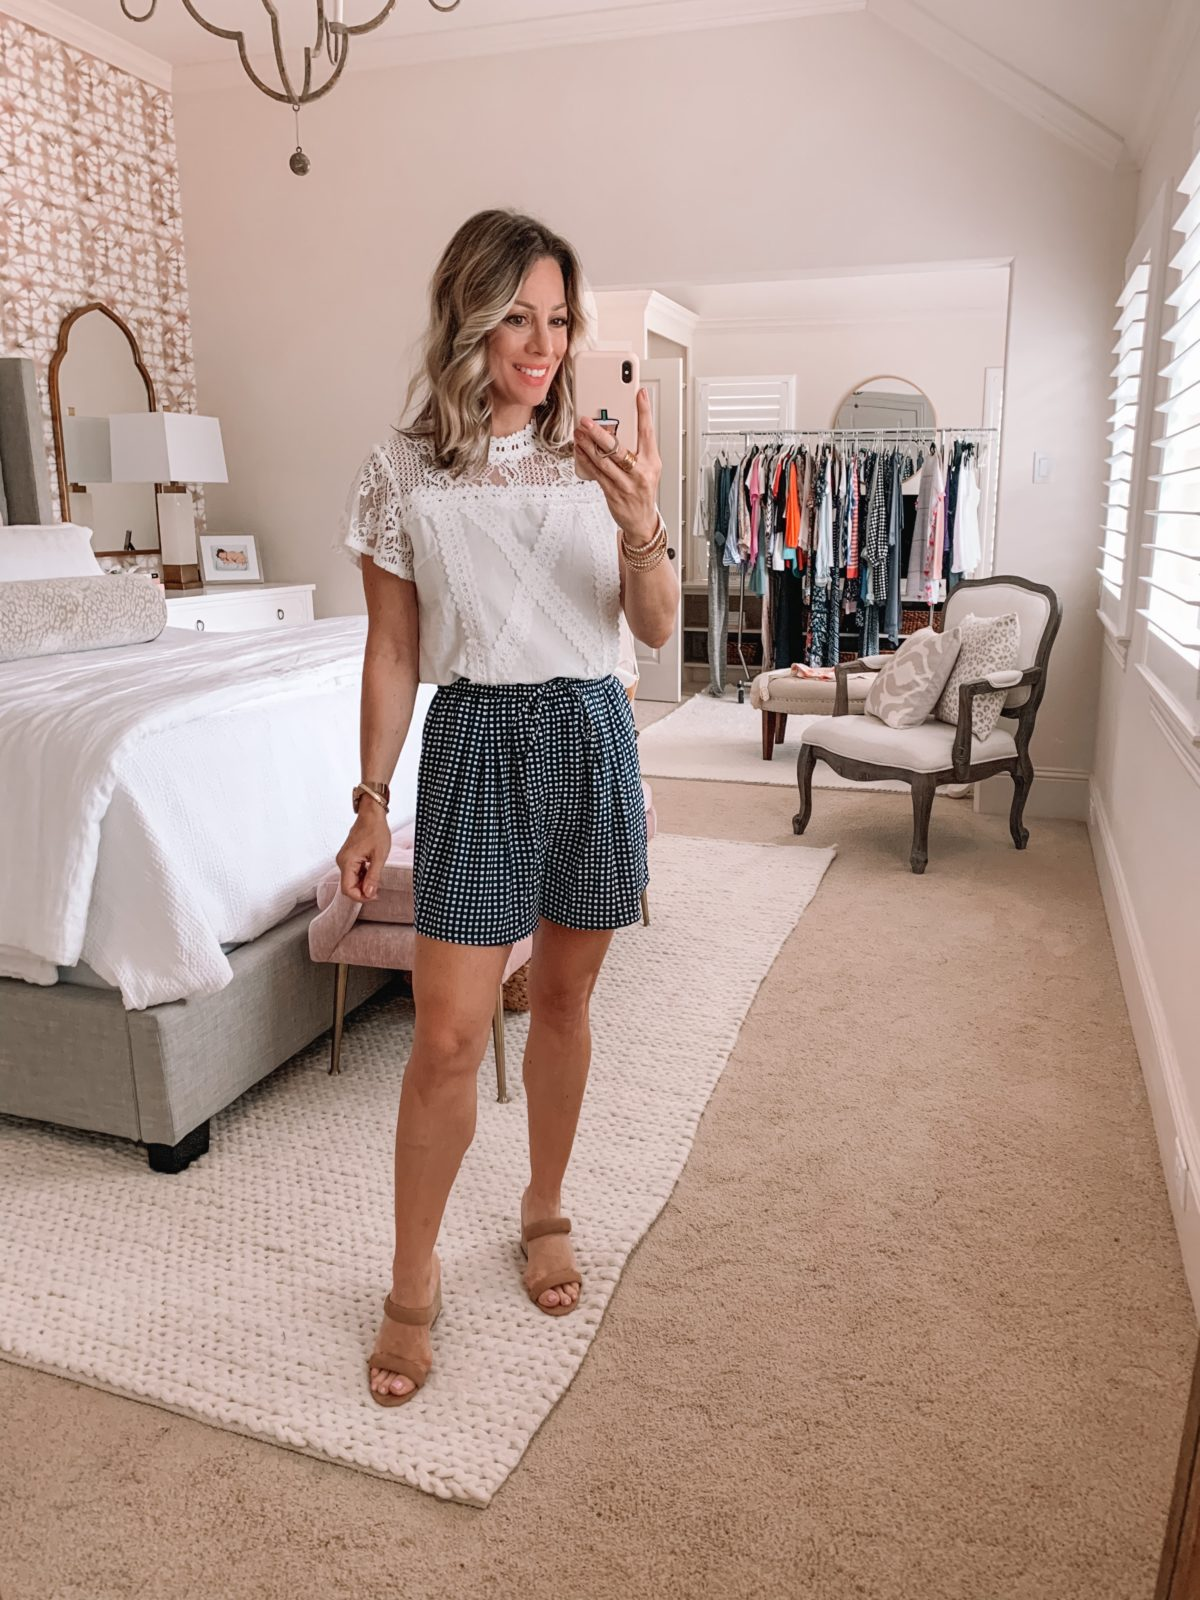 Amazon Fashion Finds, Lace Top, Checkered Shorts, Sandals